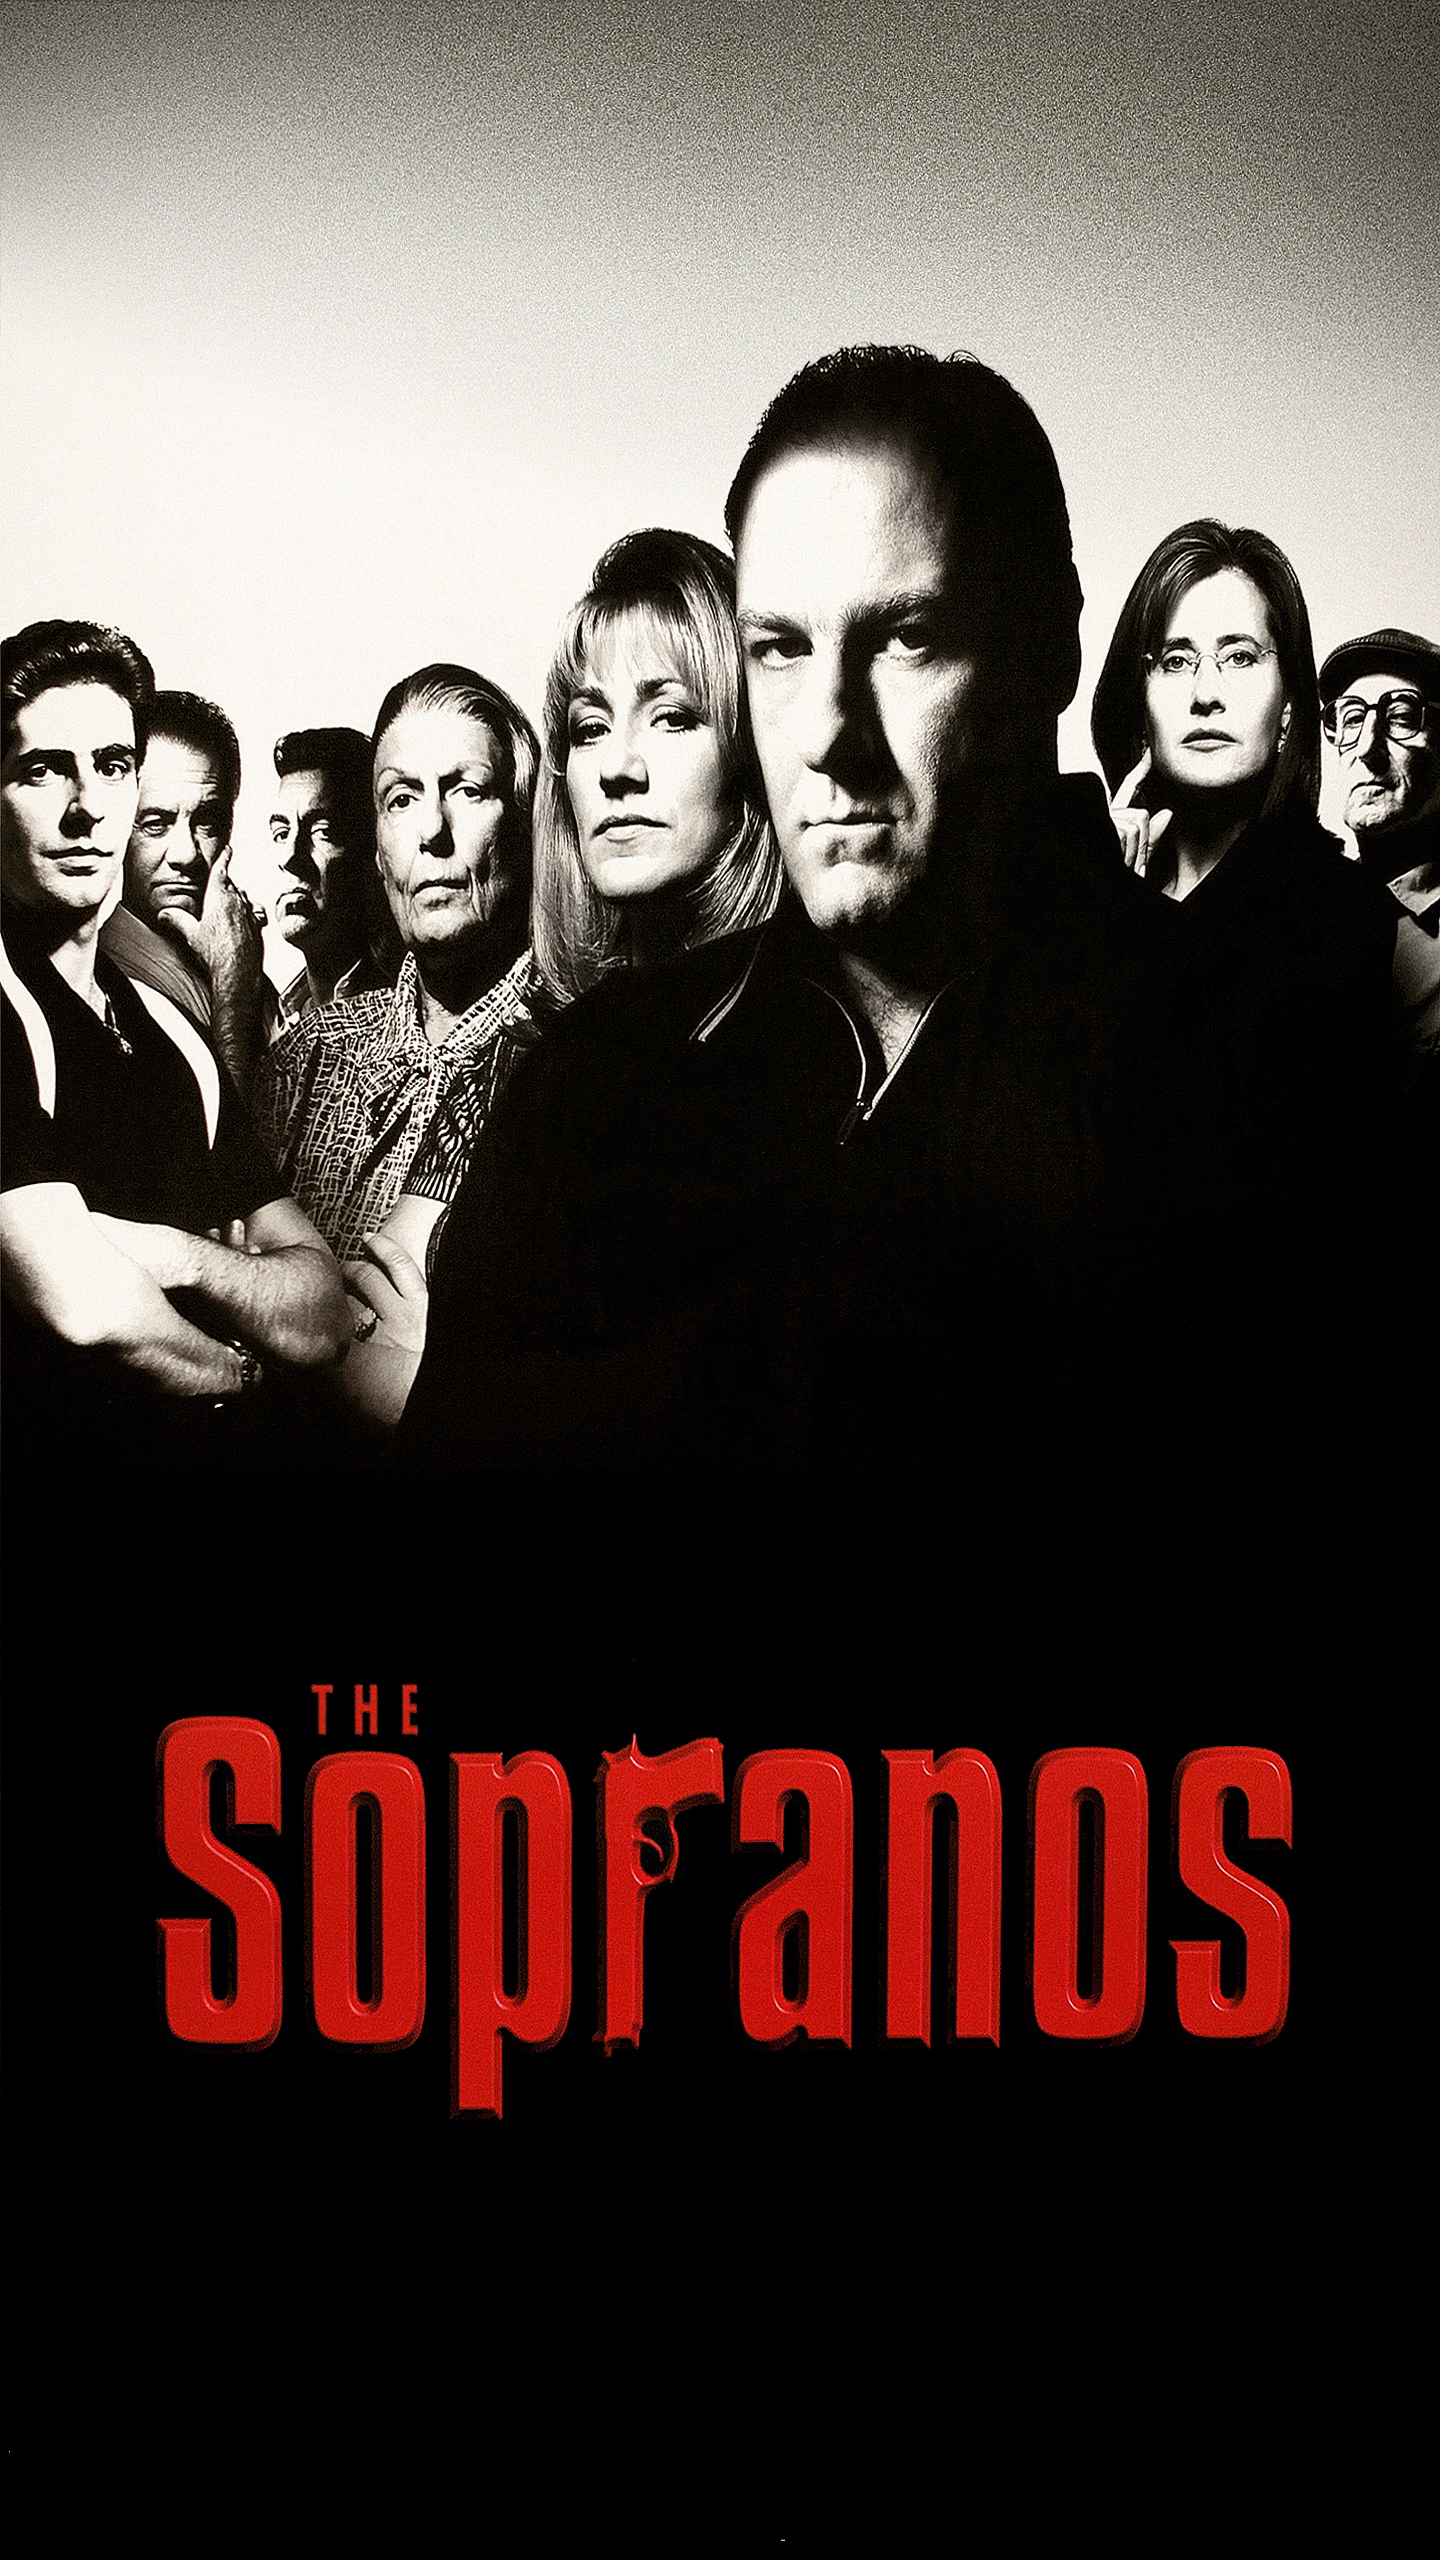 The sopranos hd wallpapers for desktop download - Sopranos wallpaper ...